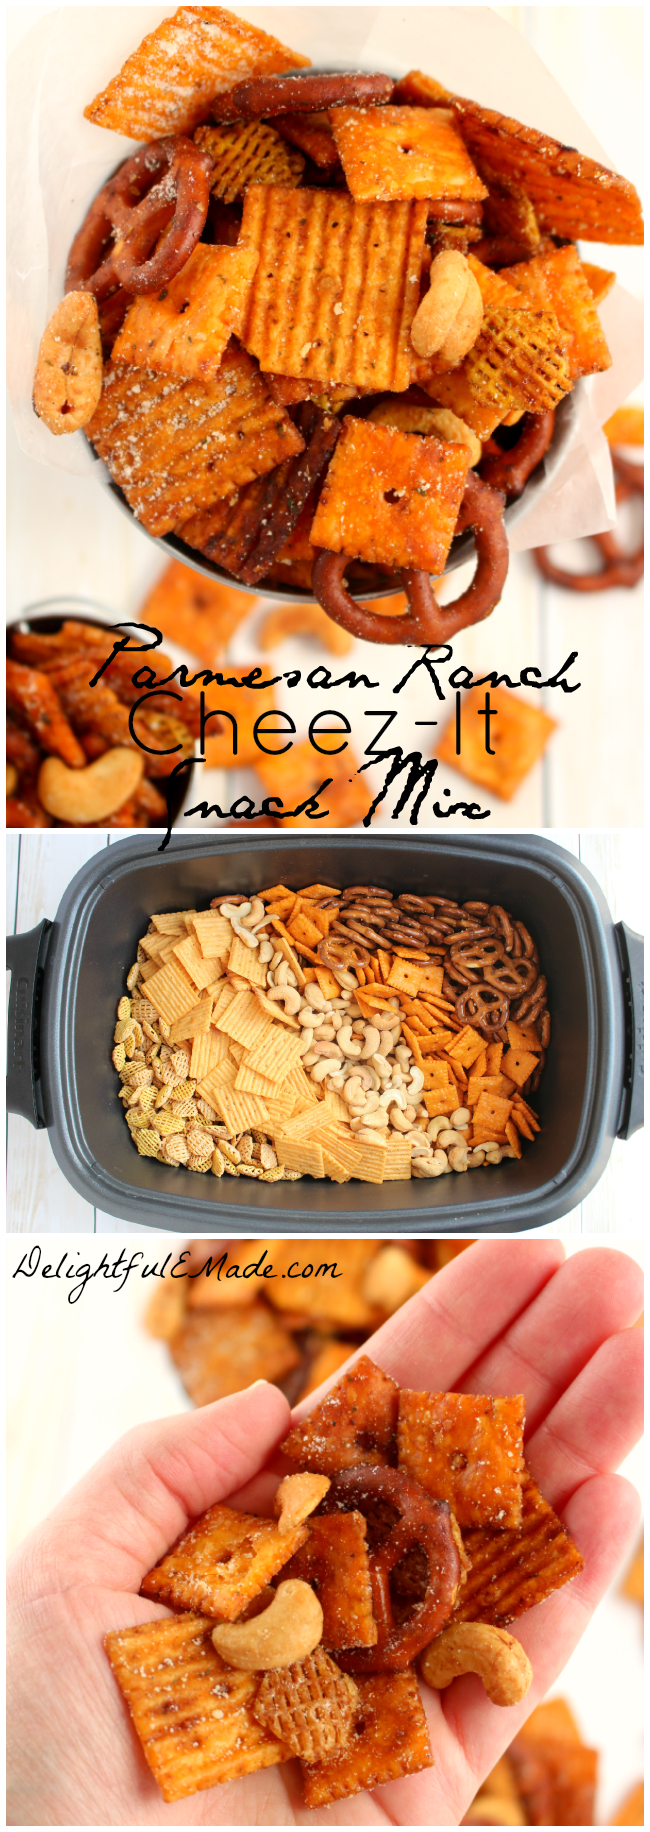 Cheez It Snack Mix Recipe